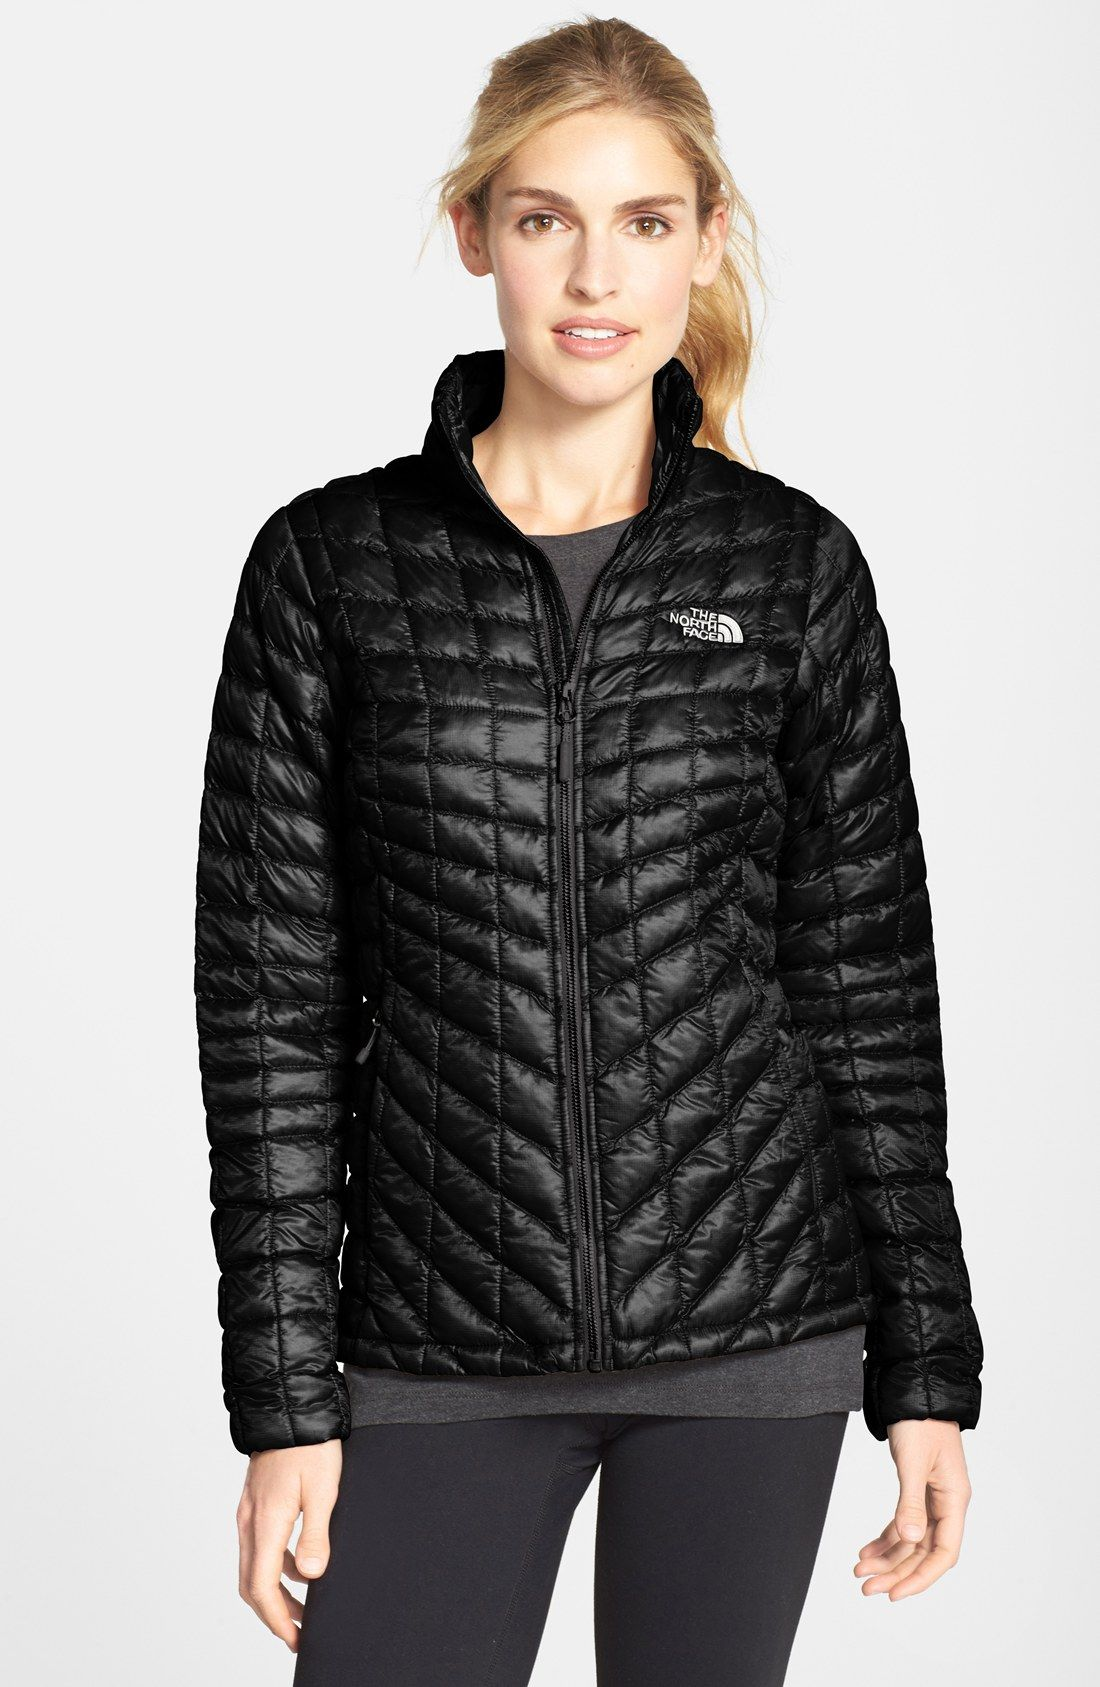 dc00a87d8a6e The North Face  ThermoBall™  PrimaLoft® Front Zip Jacket (Regular Retail  Price   199.00)